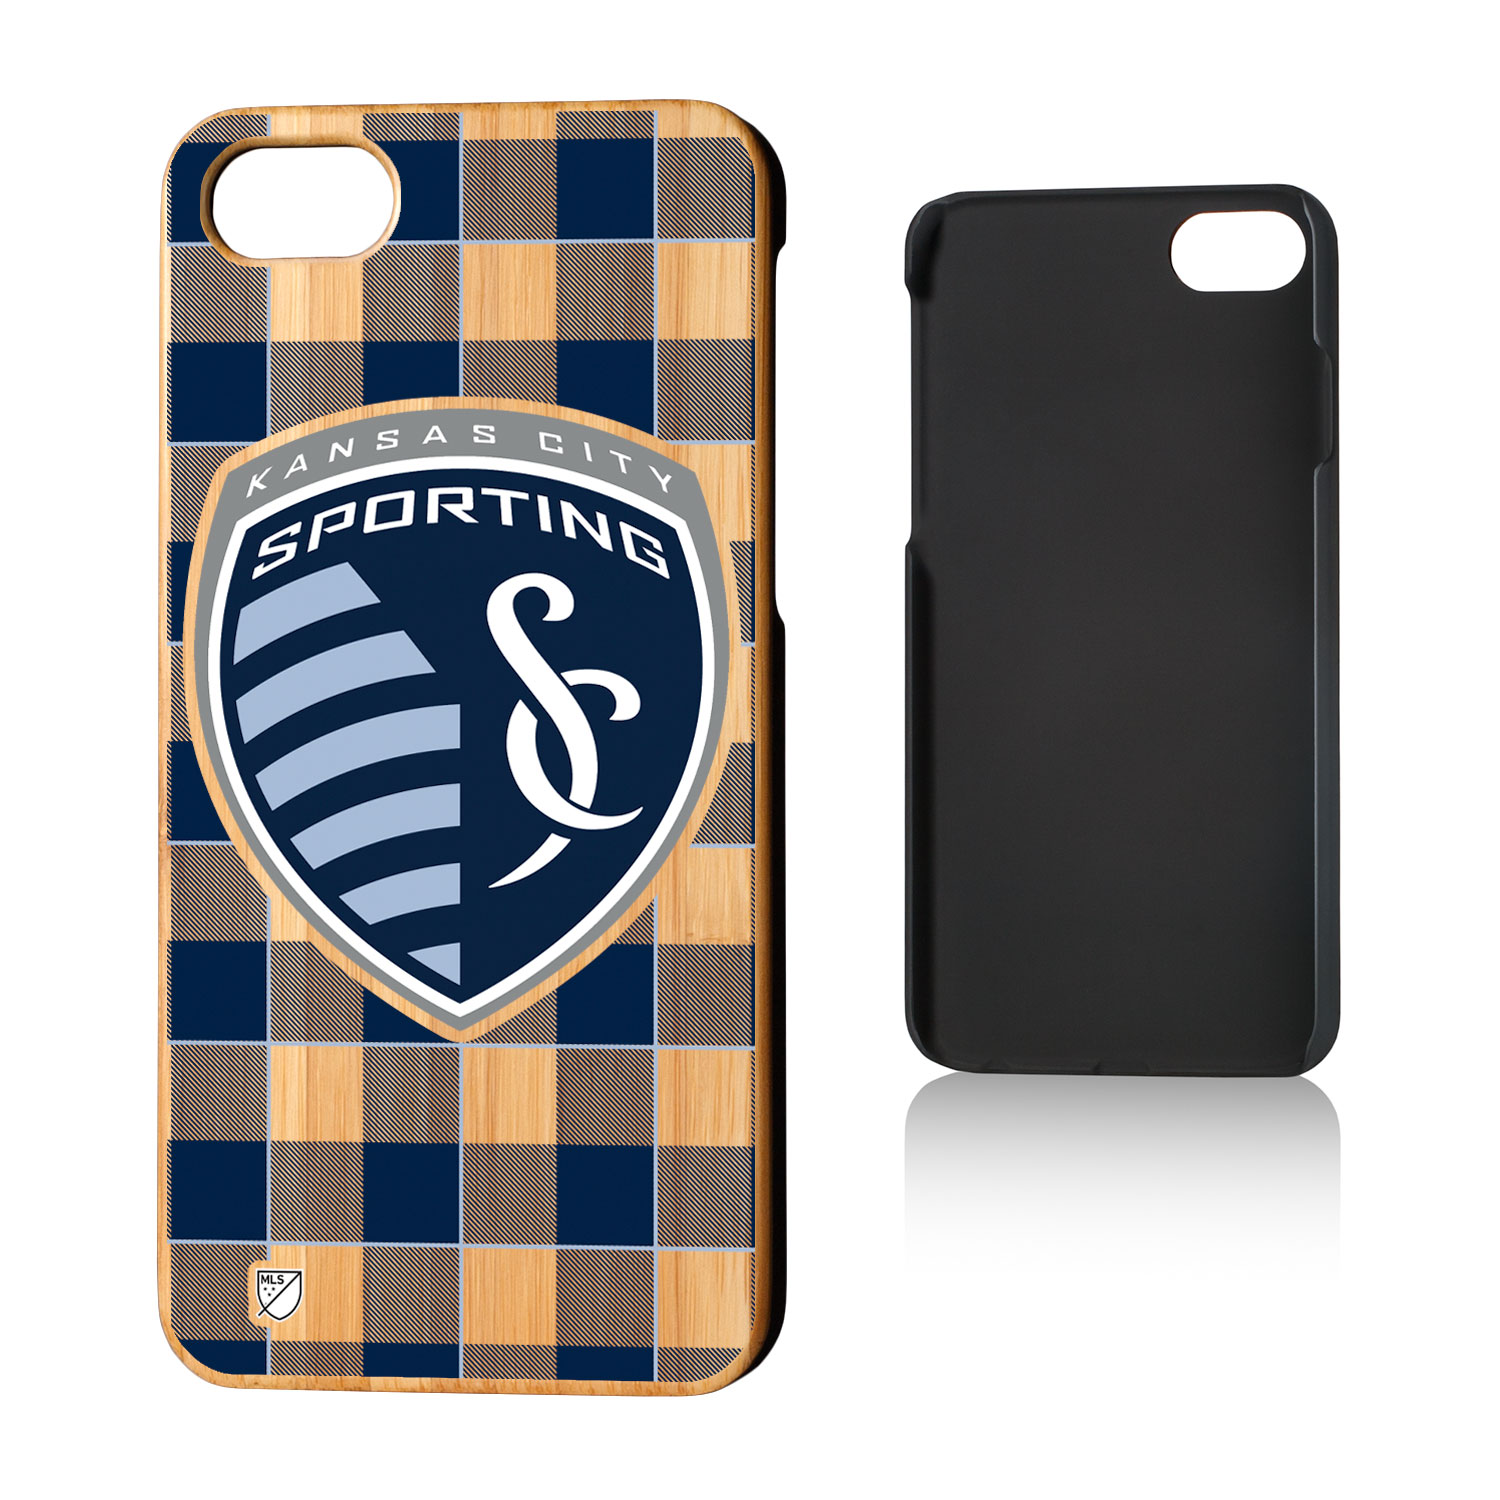 Sporting Kansas City SPORTING Plaid Bamboo Case for iPhone 8 / 7